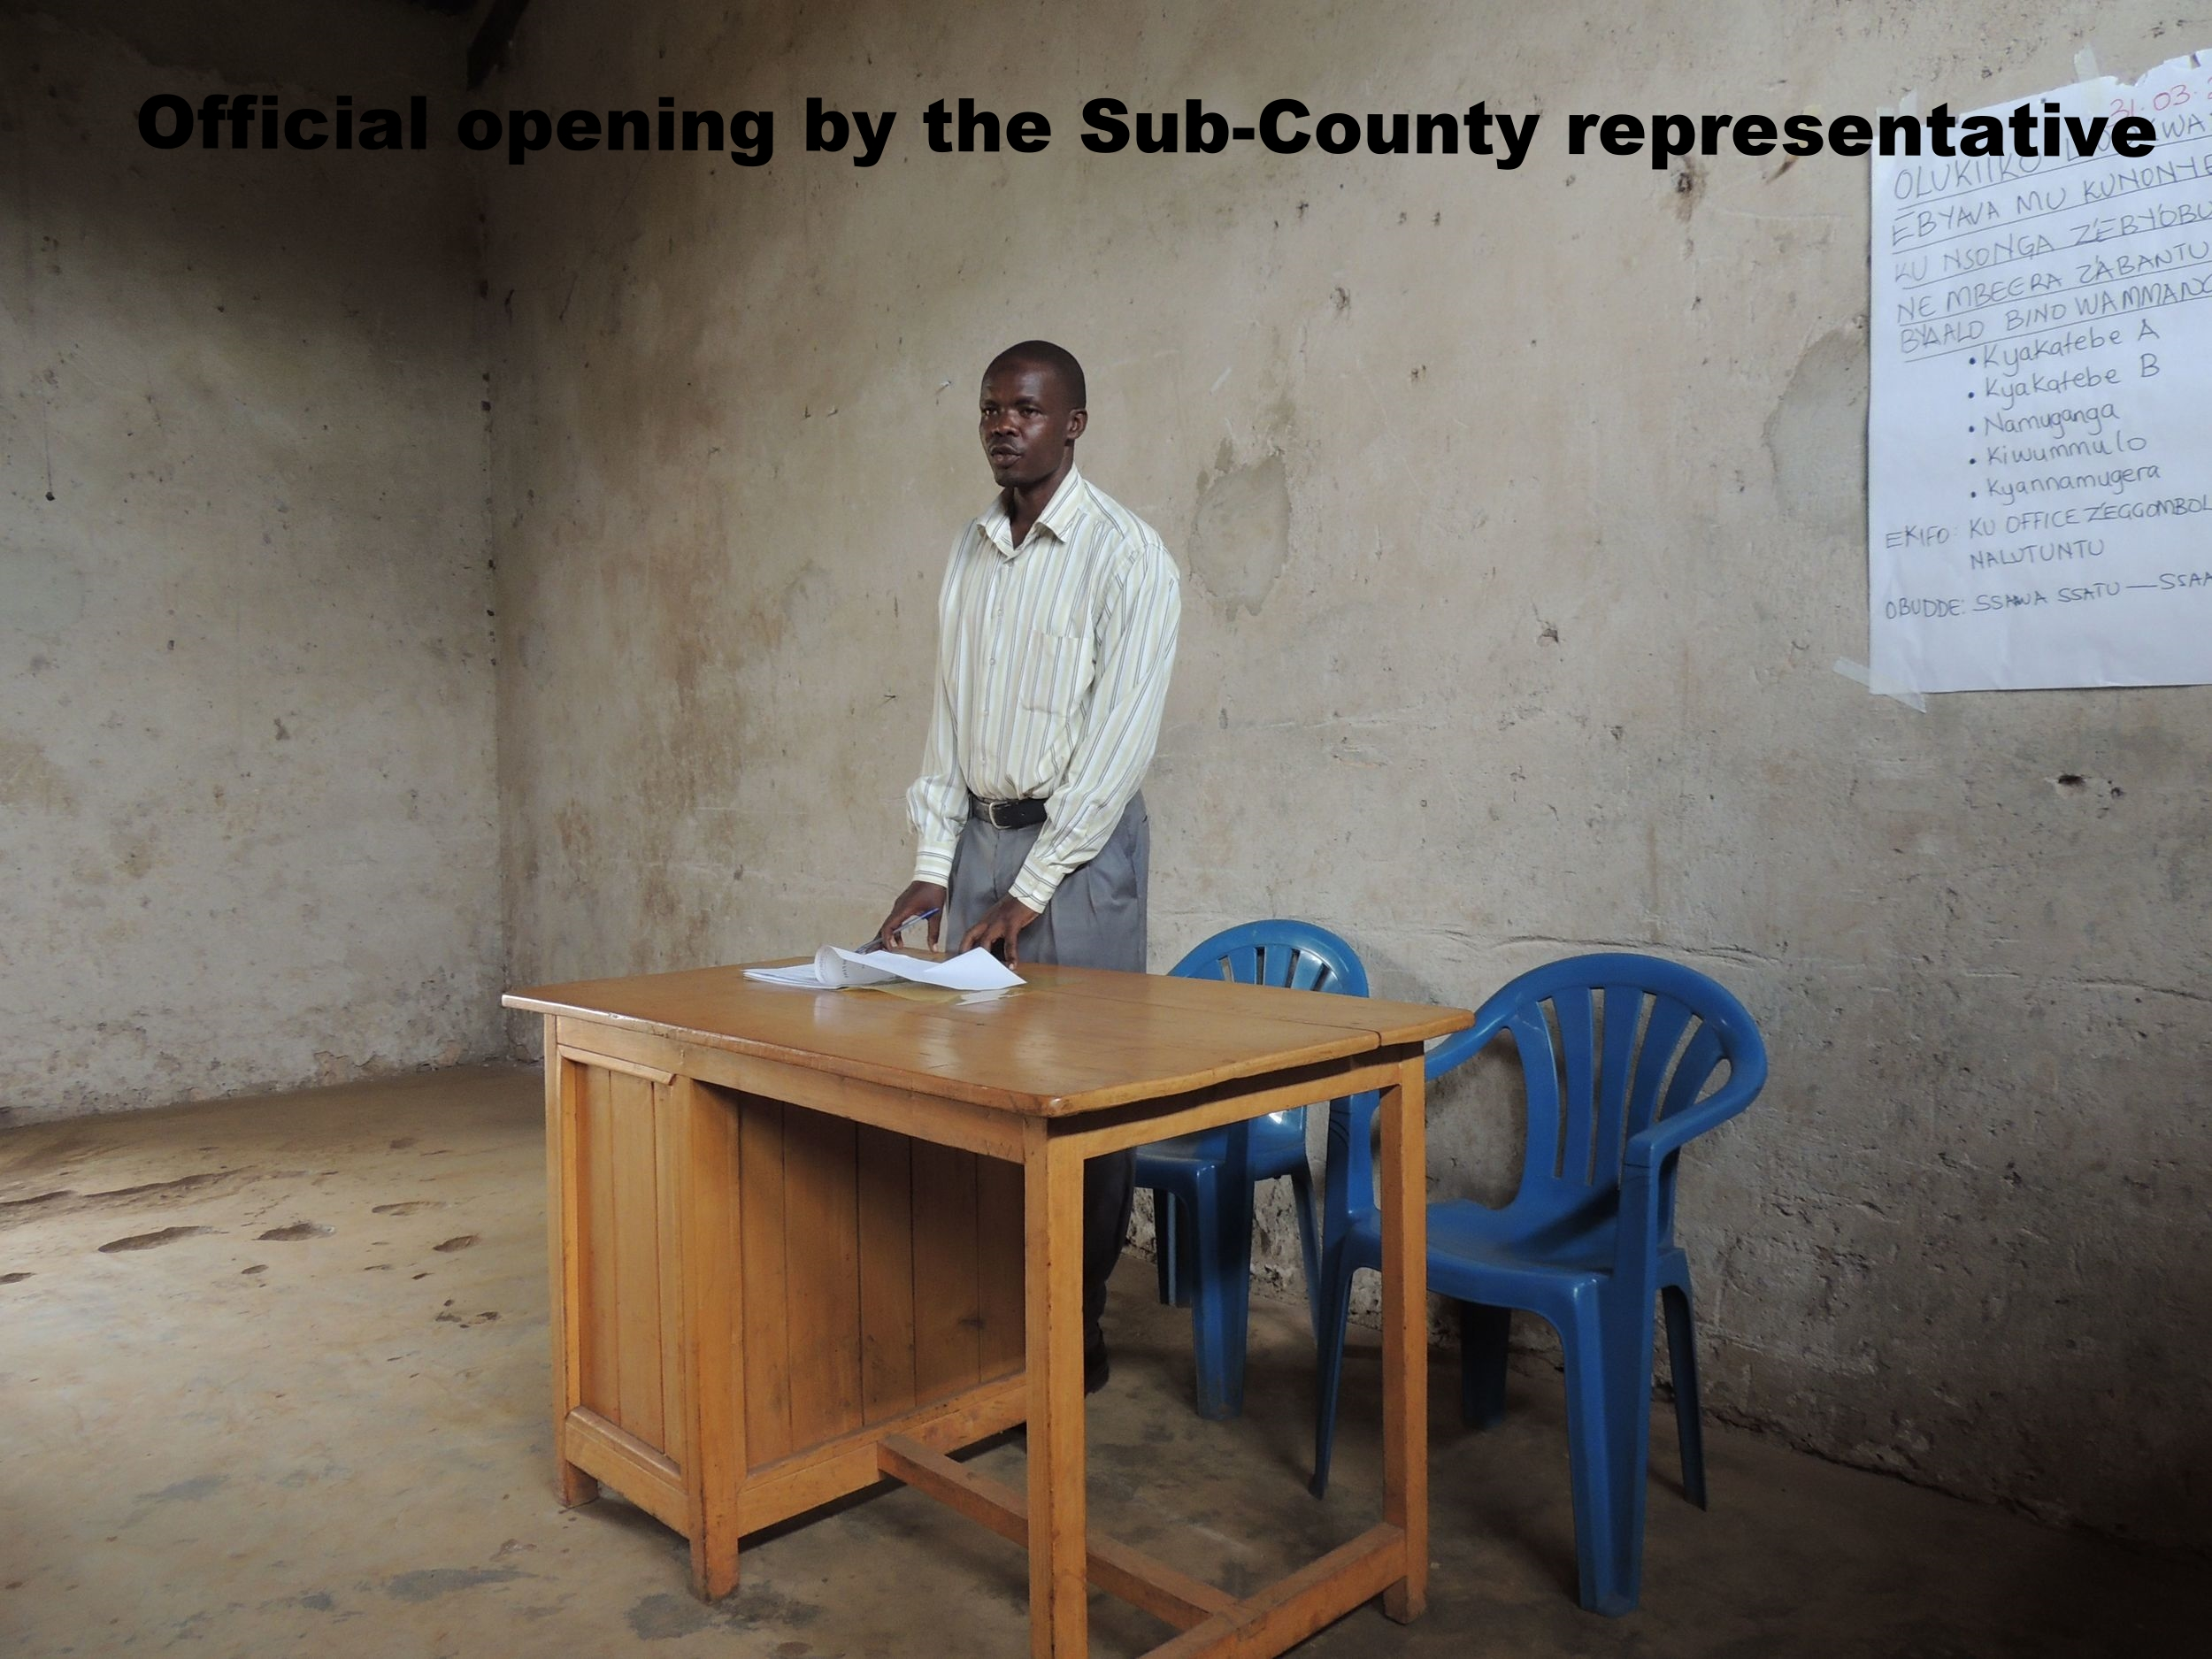 Official opening by the Sub-County representative